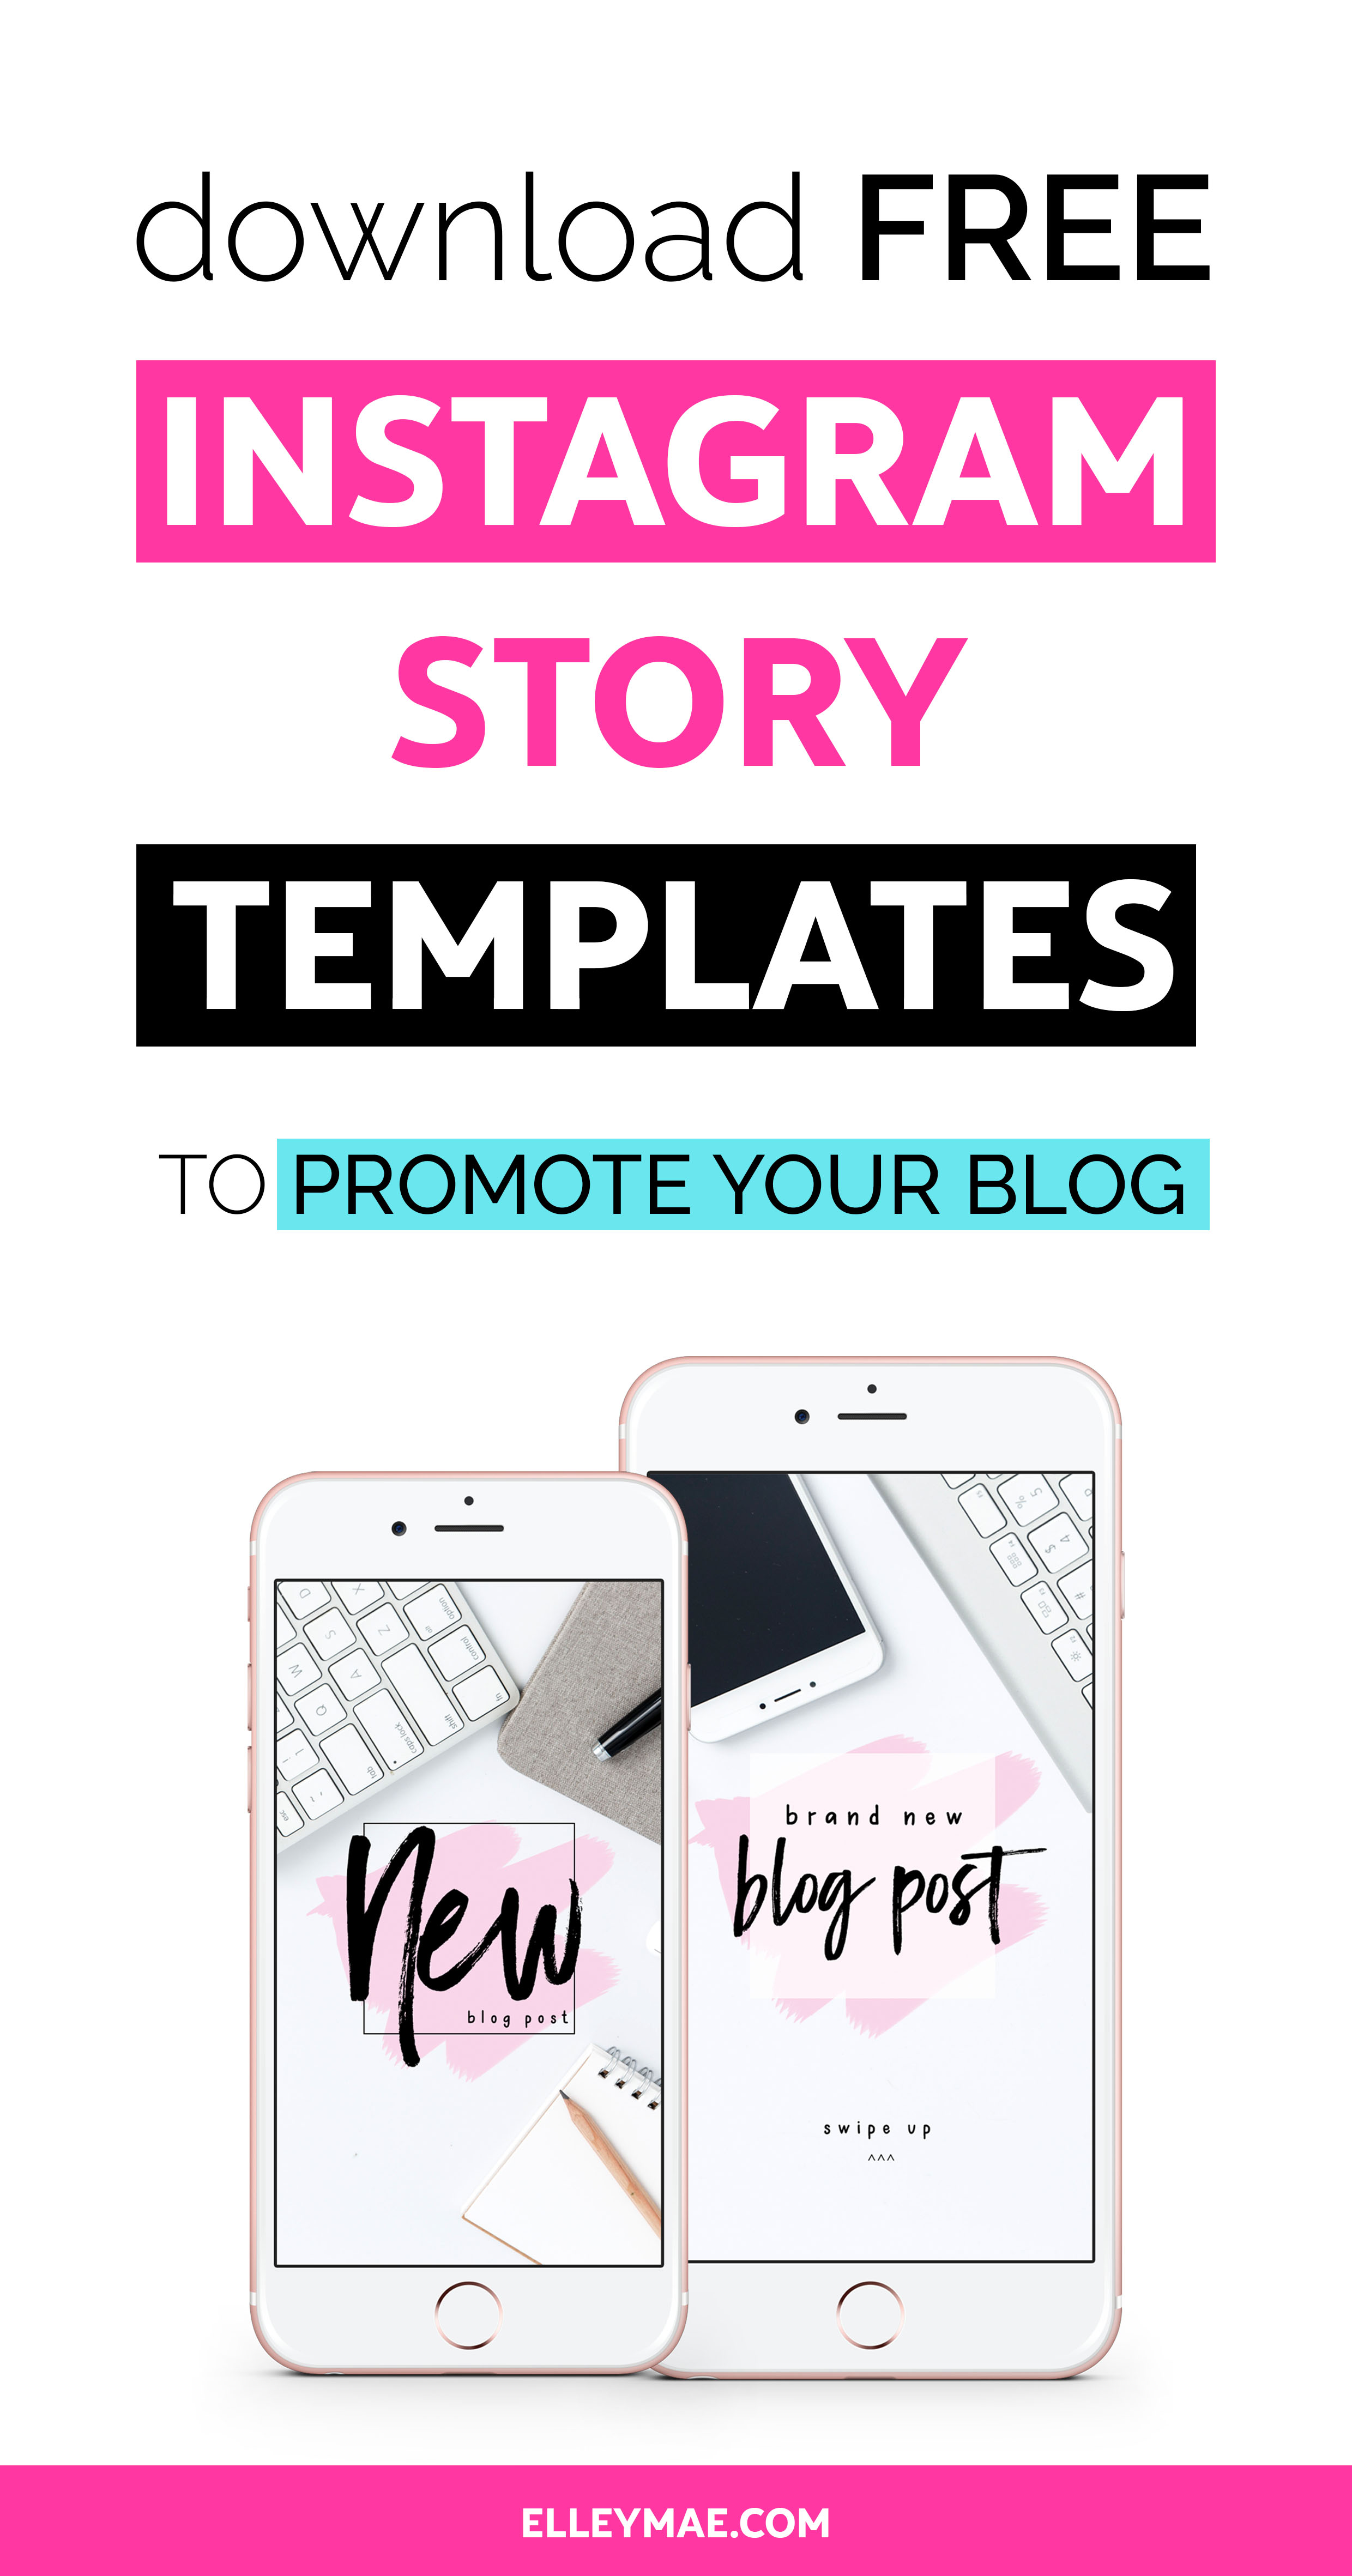 8 creative ways to grow your blog with instagram stories elley mae. Black Bedroom Furniture Sets. Home Design Ideas